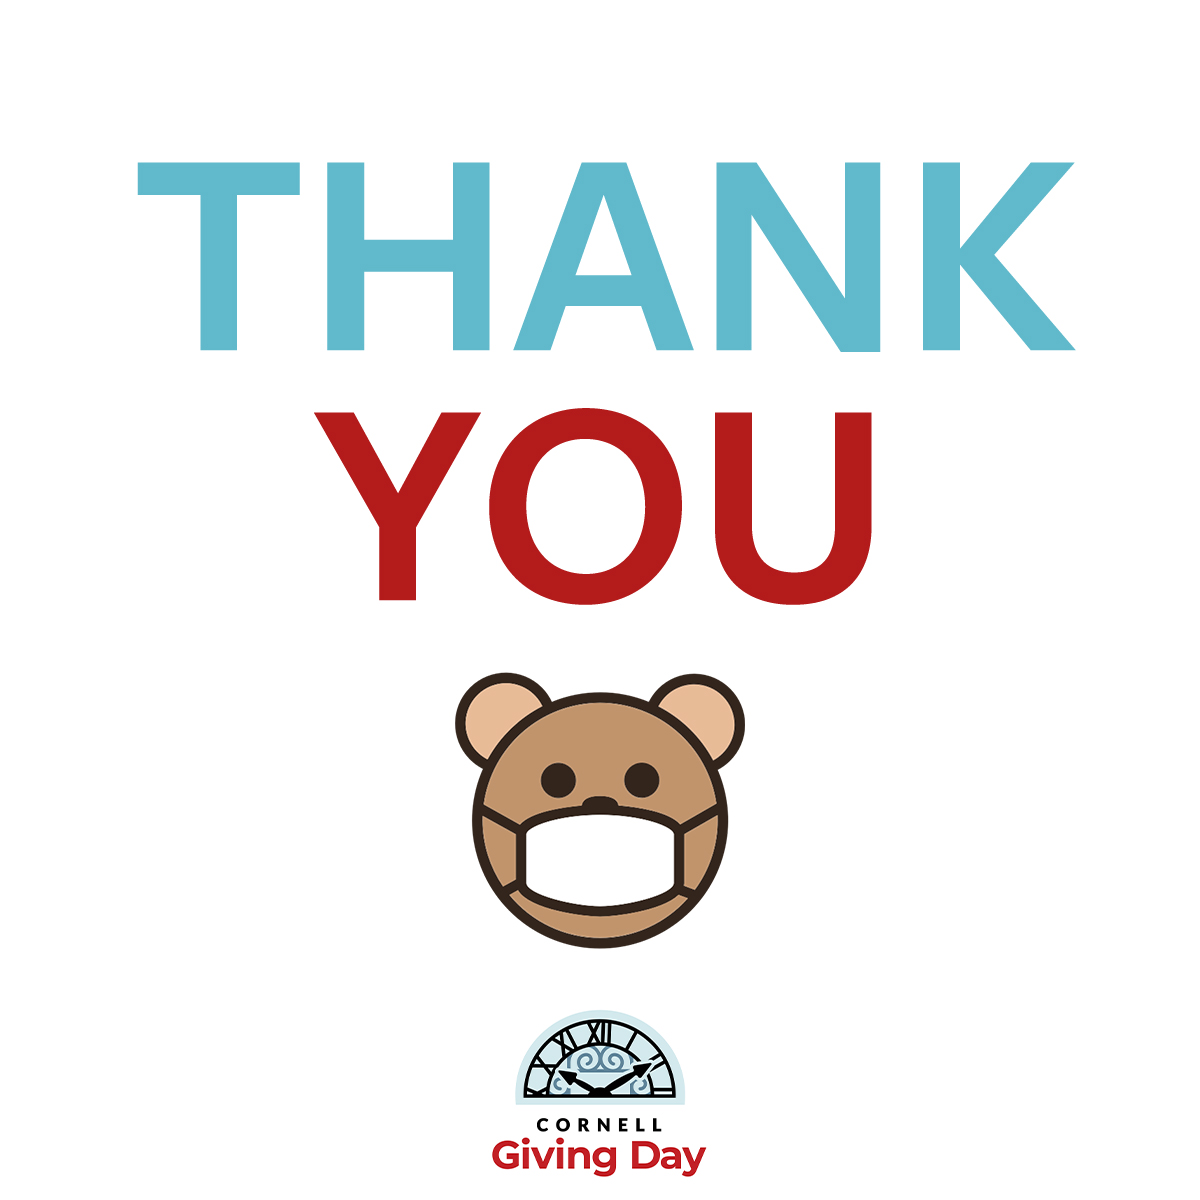 Thank You Image -- THANK YOU written in blue and red with cartoon of a bear wearing a mask over the Cornell Giving Day logo